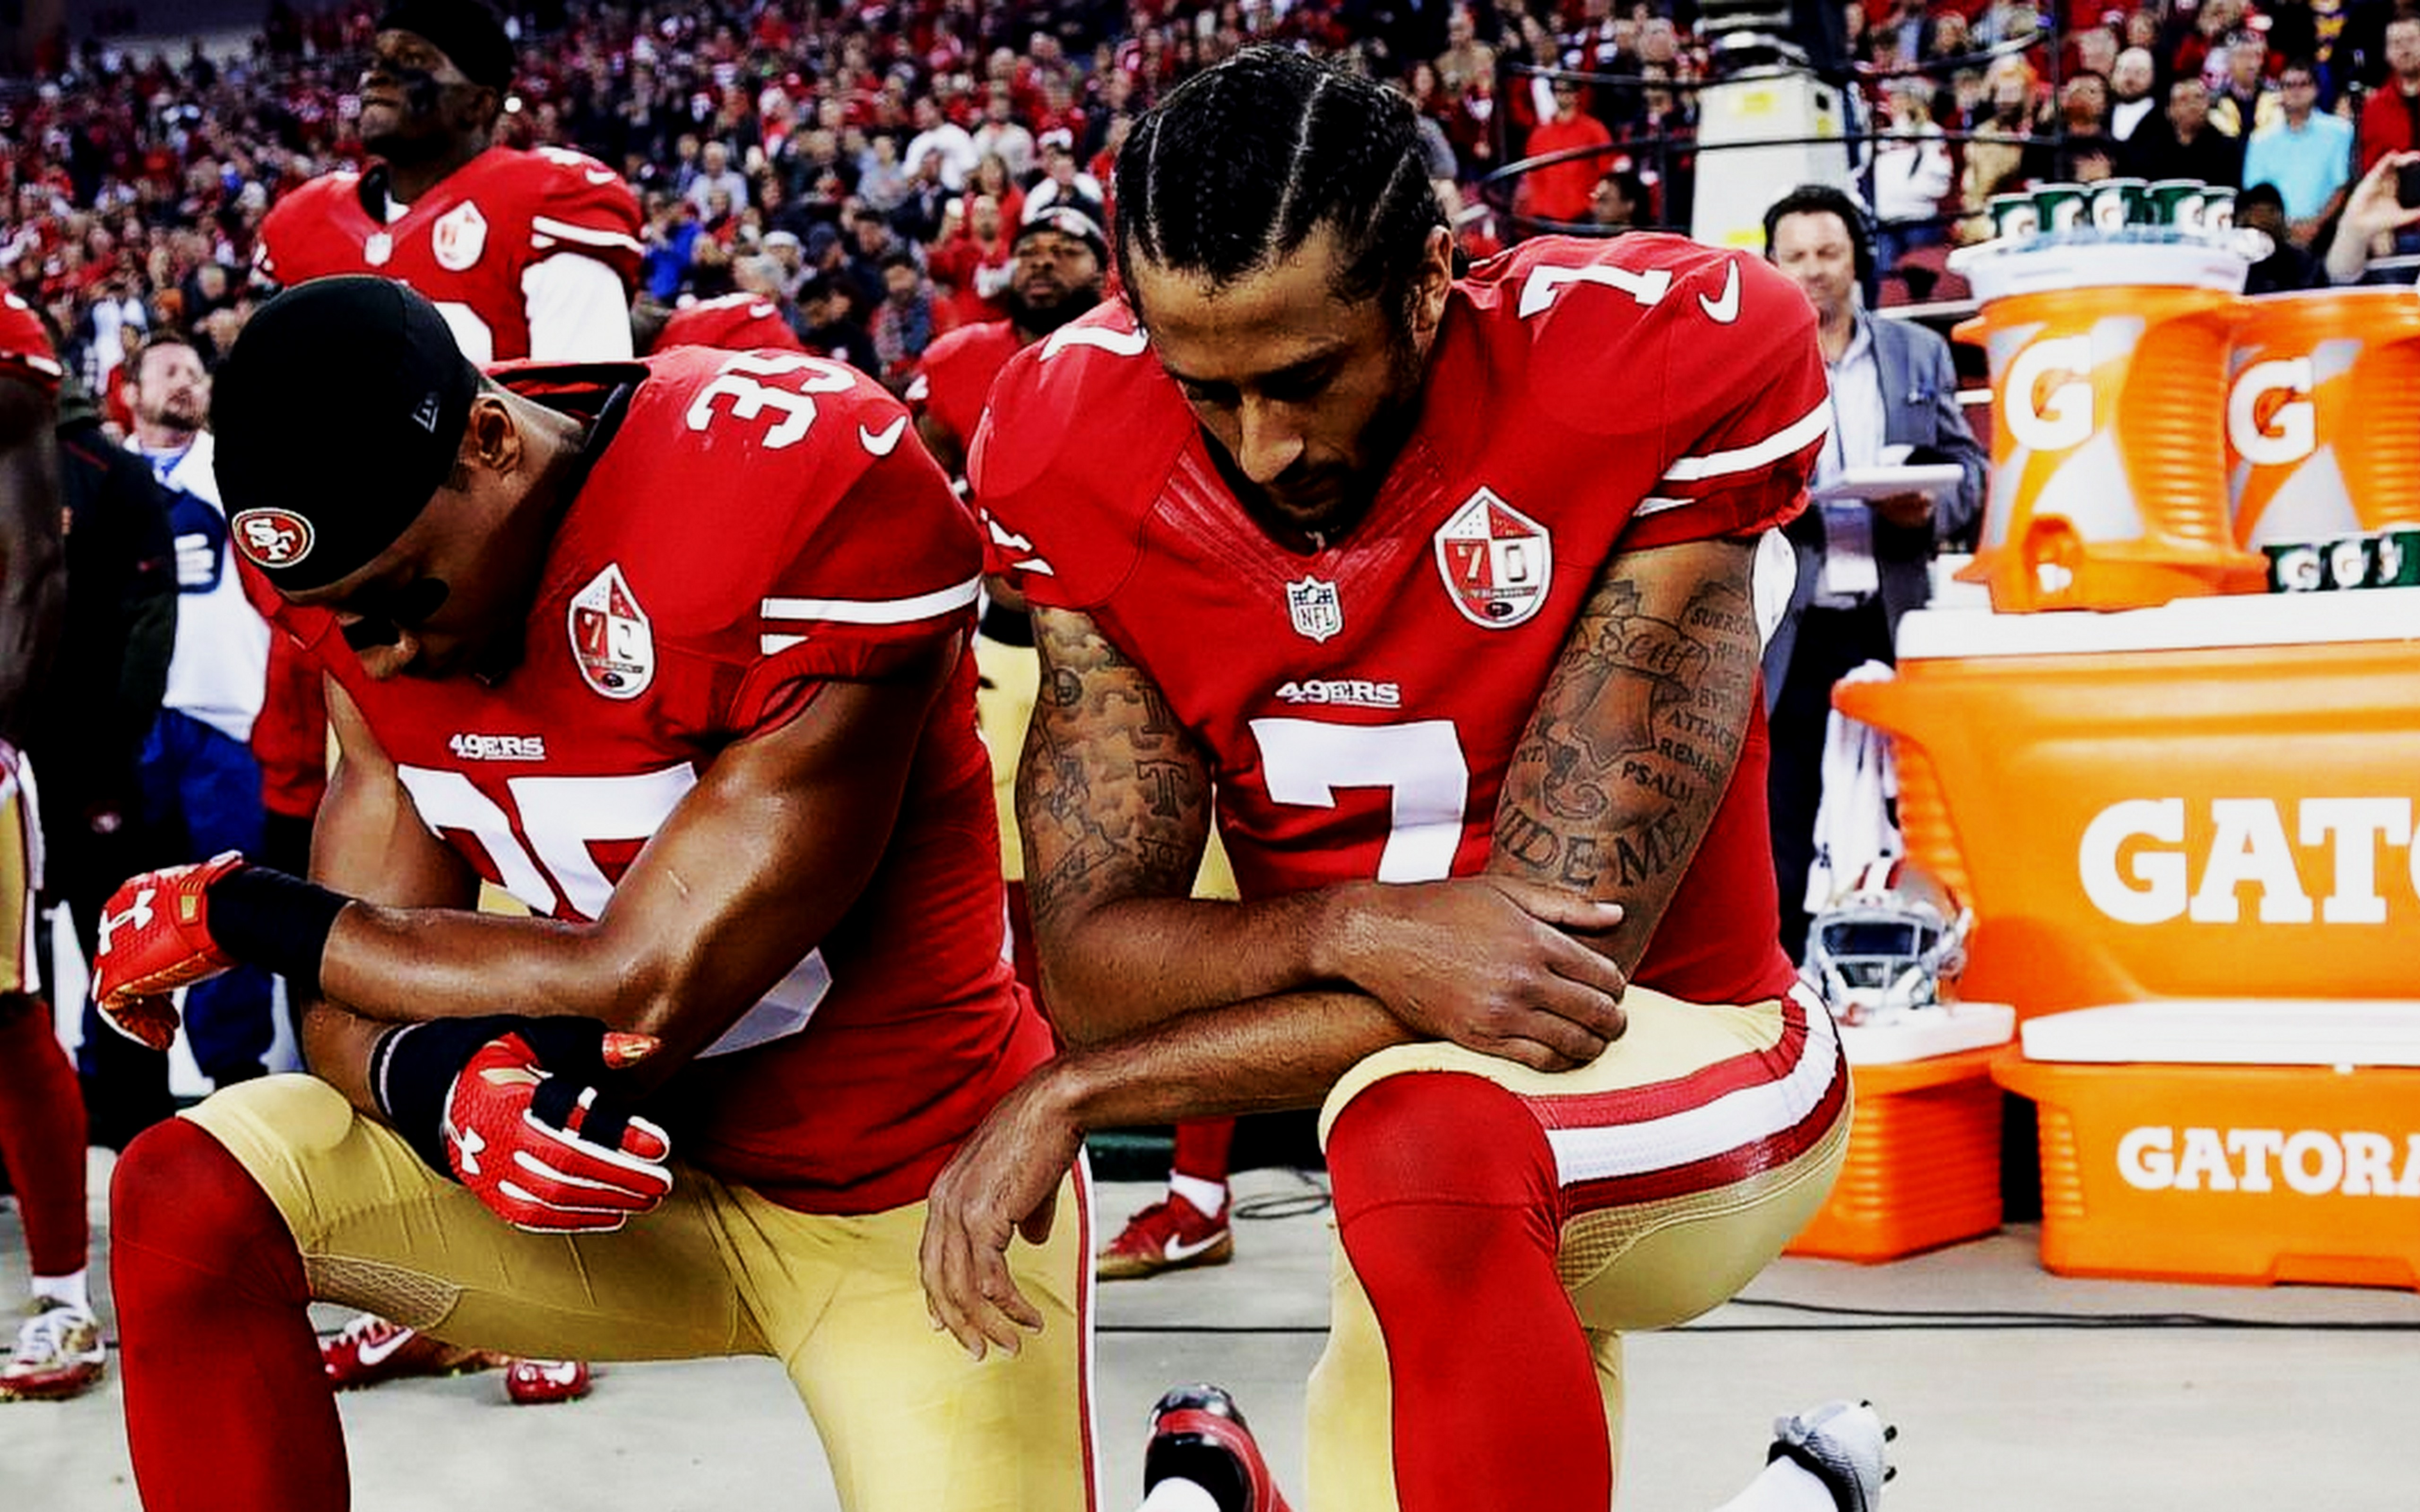 COLIN KAEPERNICK'S PROTEST AGAINST SYSTEMIC OPPRESSION